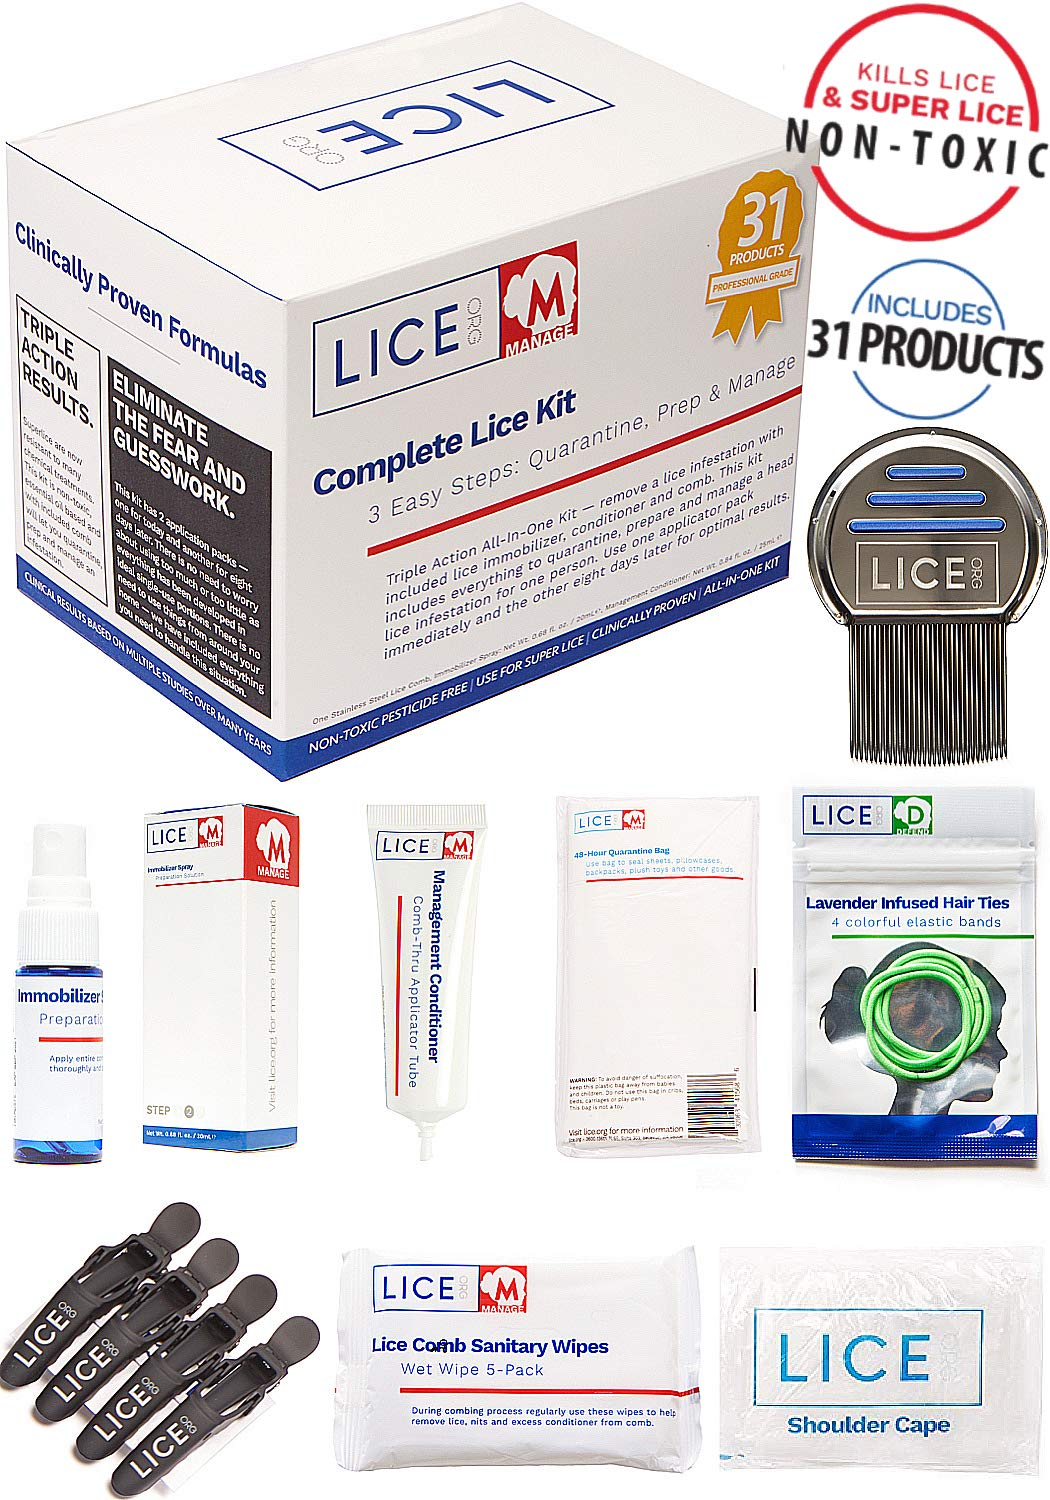 Official LICE.ORG Complete Lice Kit - Head Lice Treatment Kit with 31 Products to Quarantine, Prep and Manage A Lice Incident. Non-Toxic and Pesticide Free by LICE.ORG